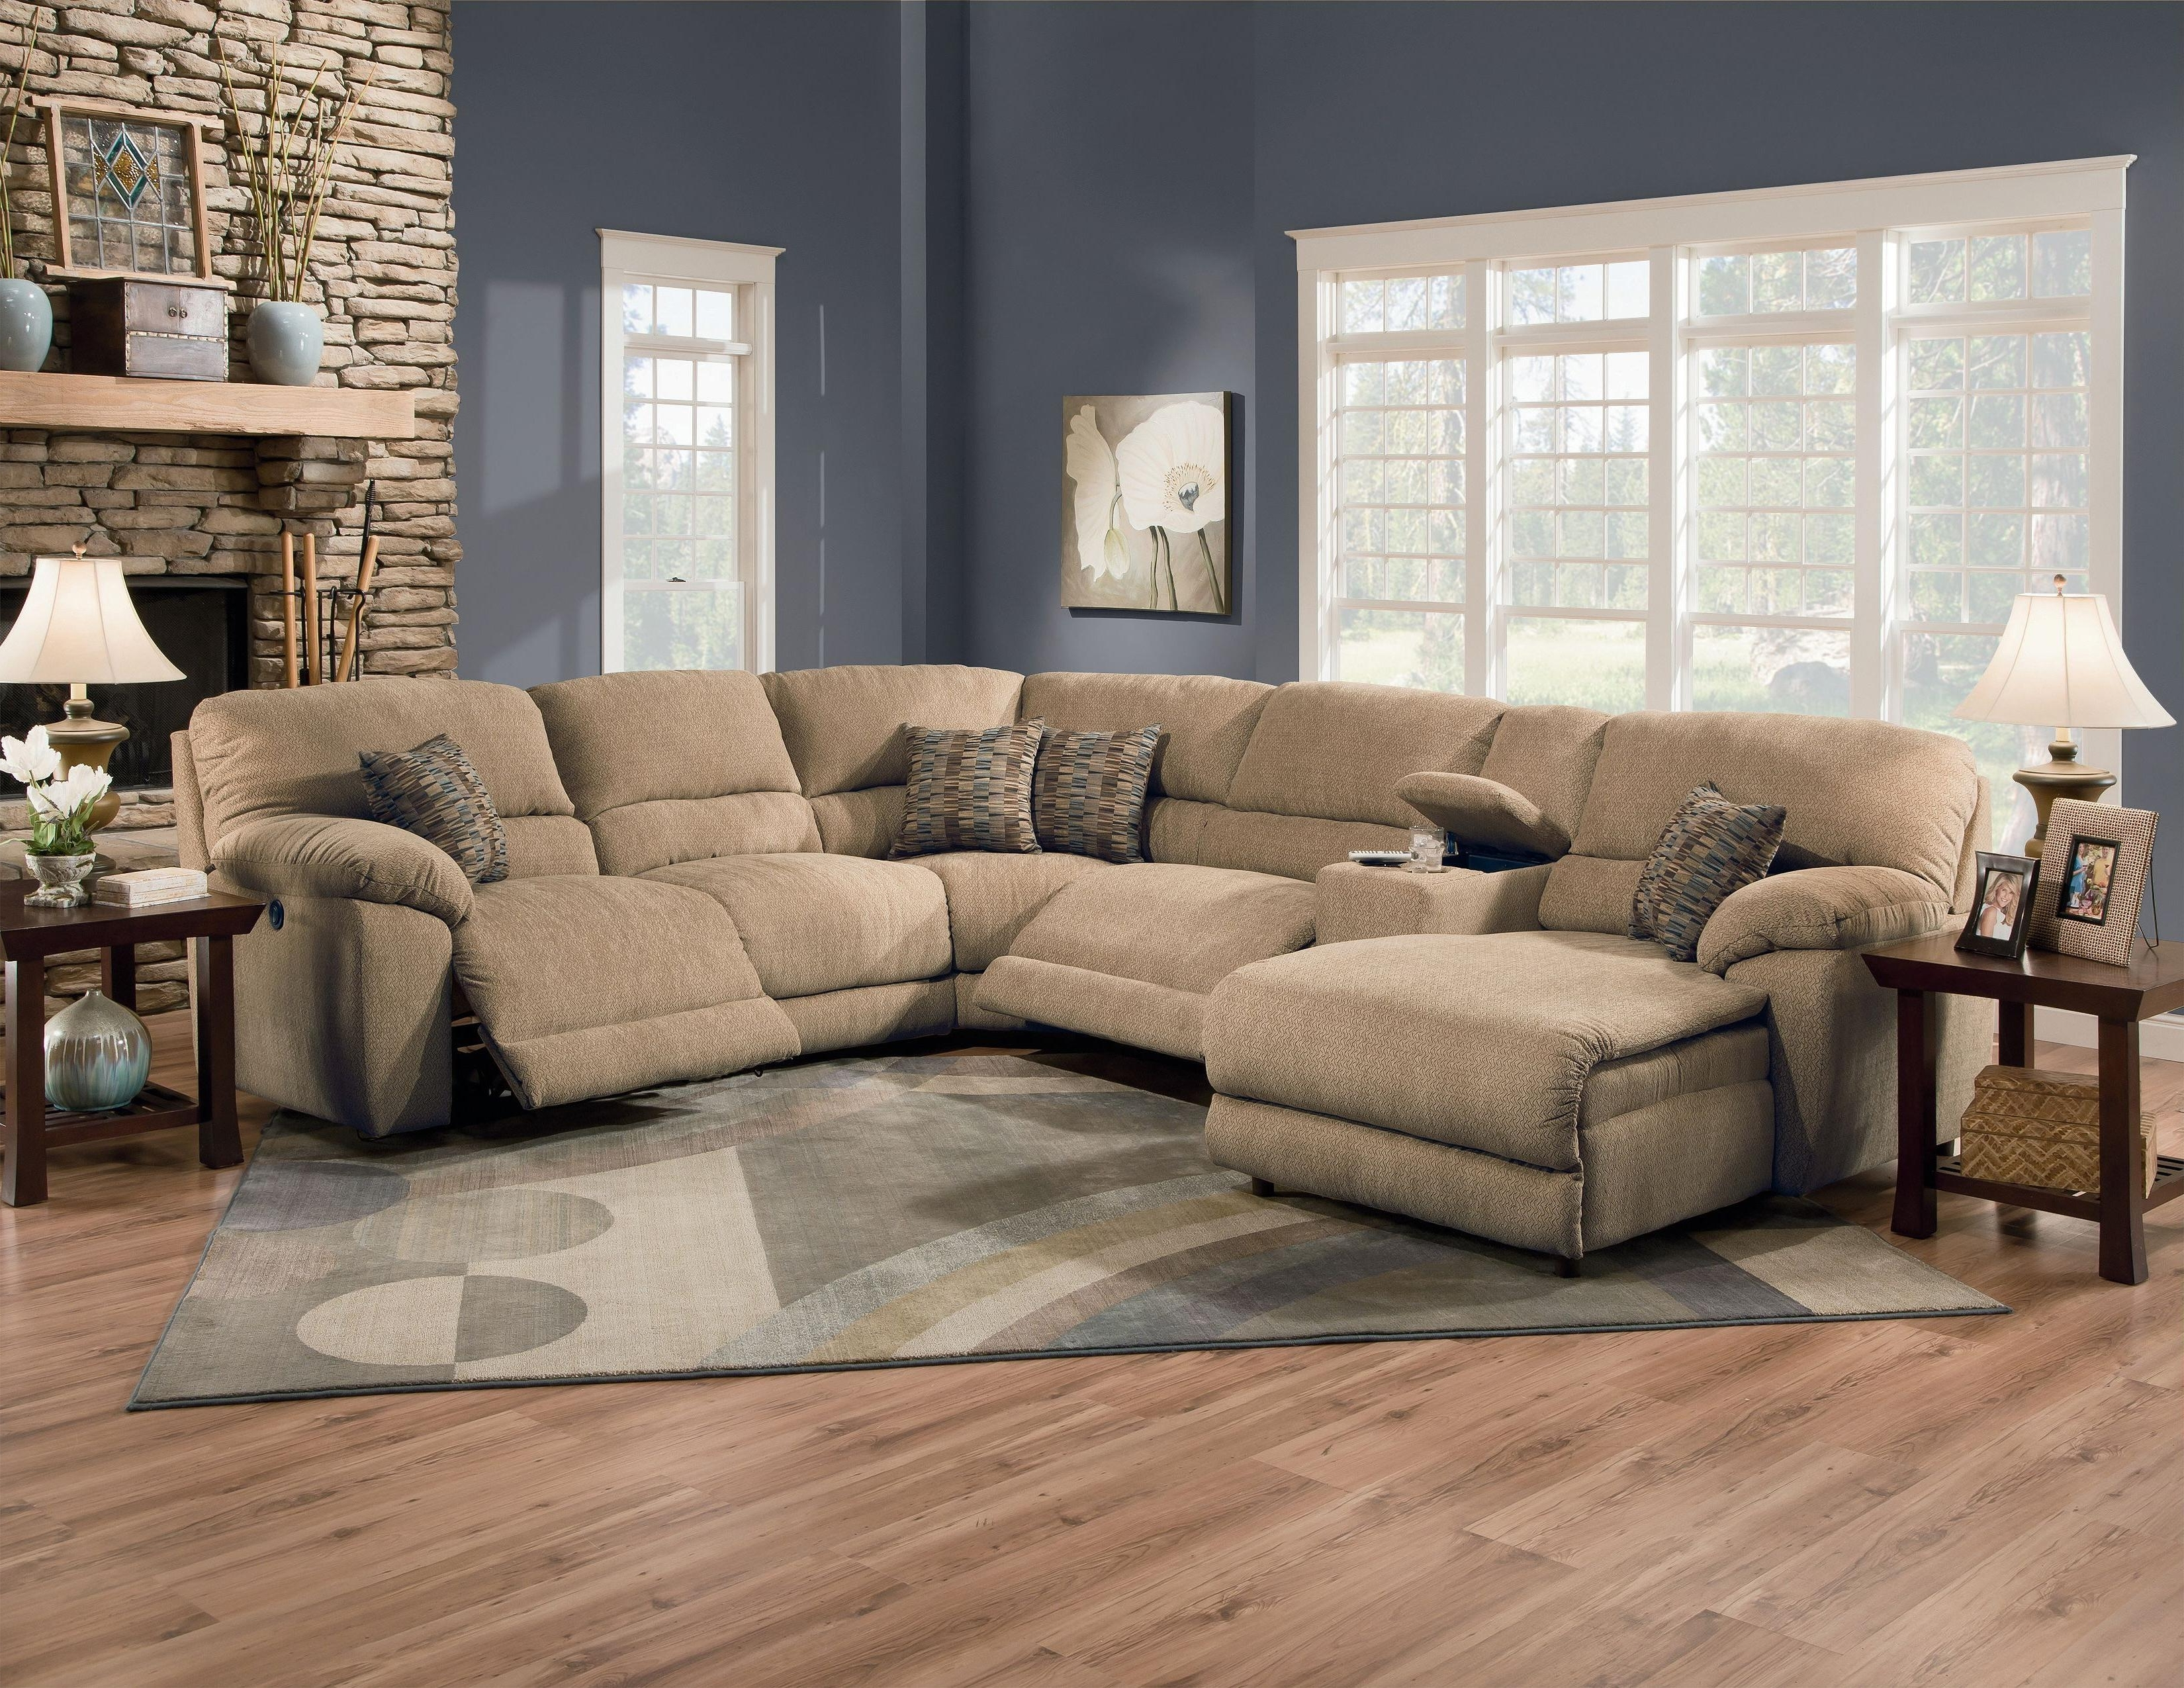 Lane Furniture: Rivers Collection Featuring Power Reclining Within Trendy Sams Club Sectional Sofas (View 17 of 20)